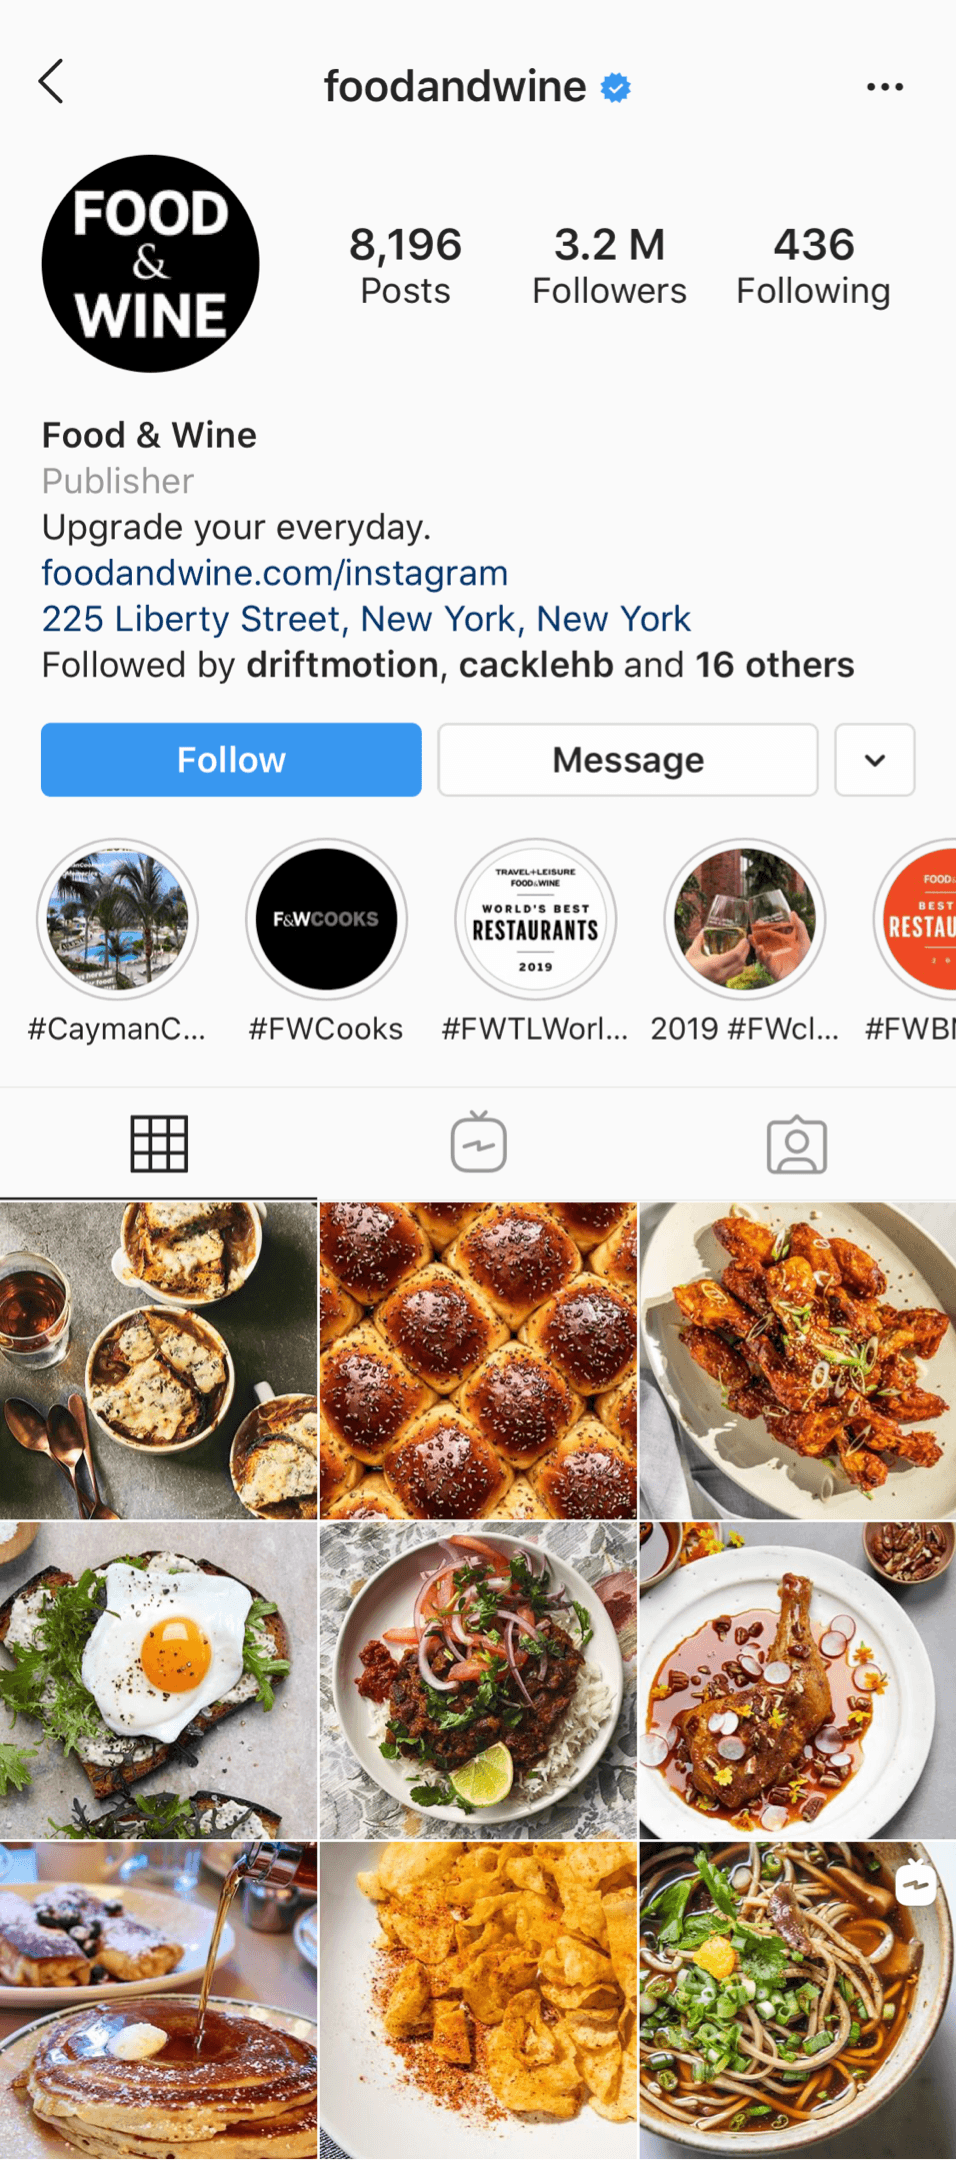 @foodandwine Instagram profile